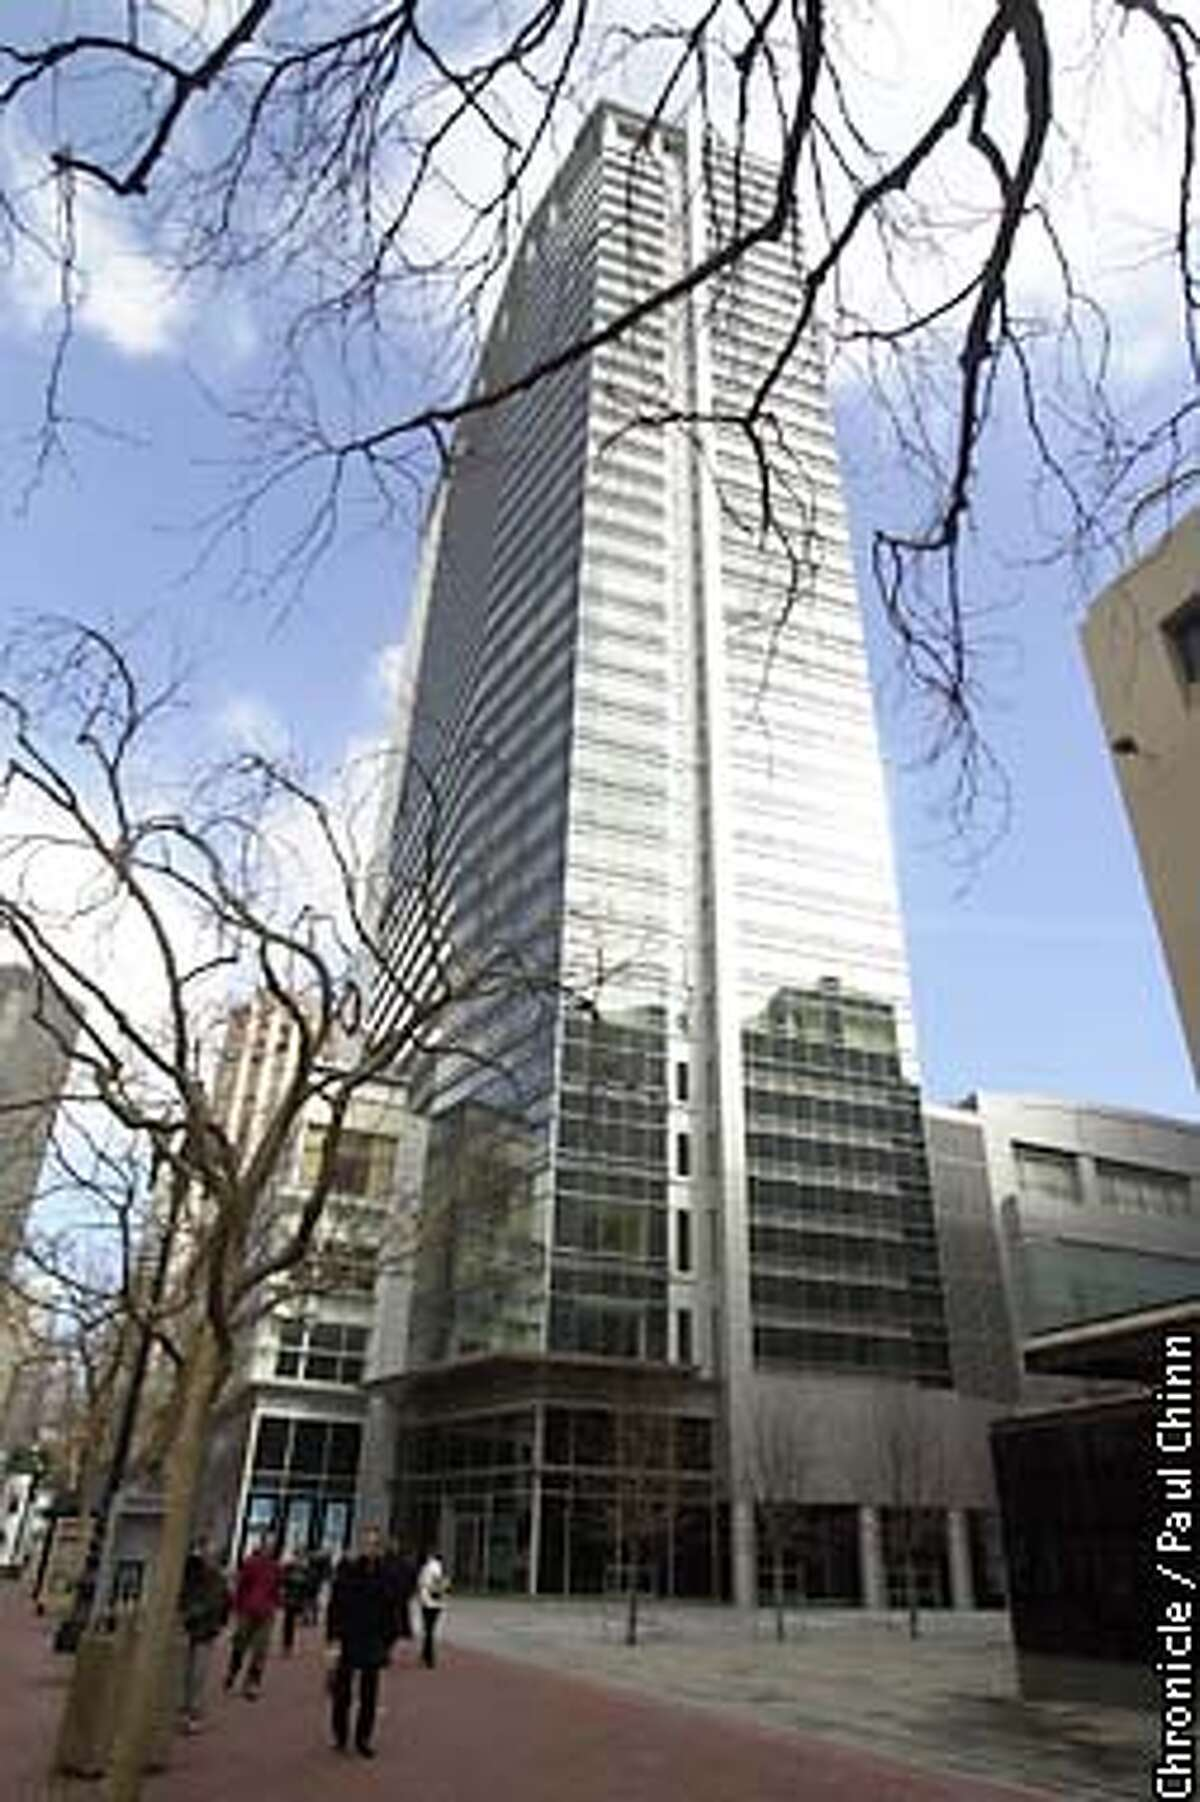 The 36-story Four Seasons tower on Market St. is a dominate new building on the downtown skyline. PAUL CHINN/S.F. CHRONICLE